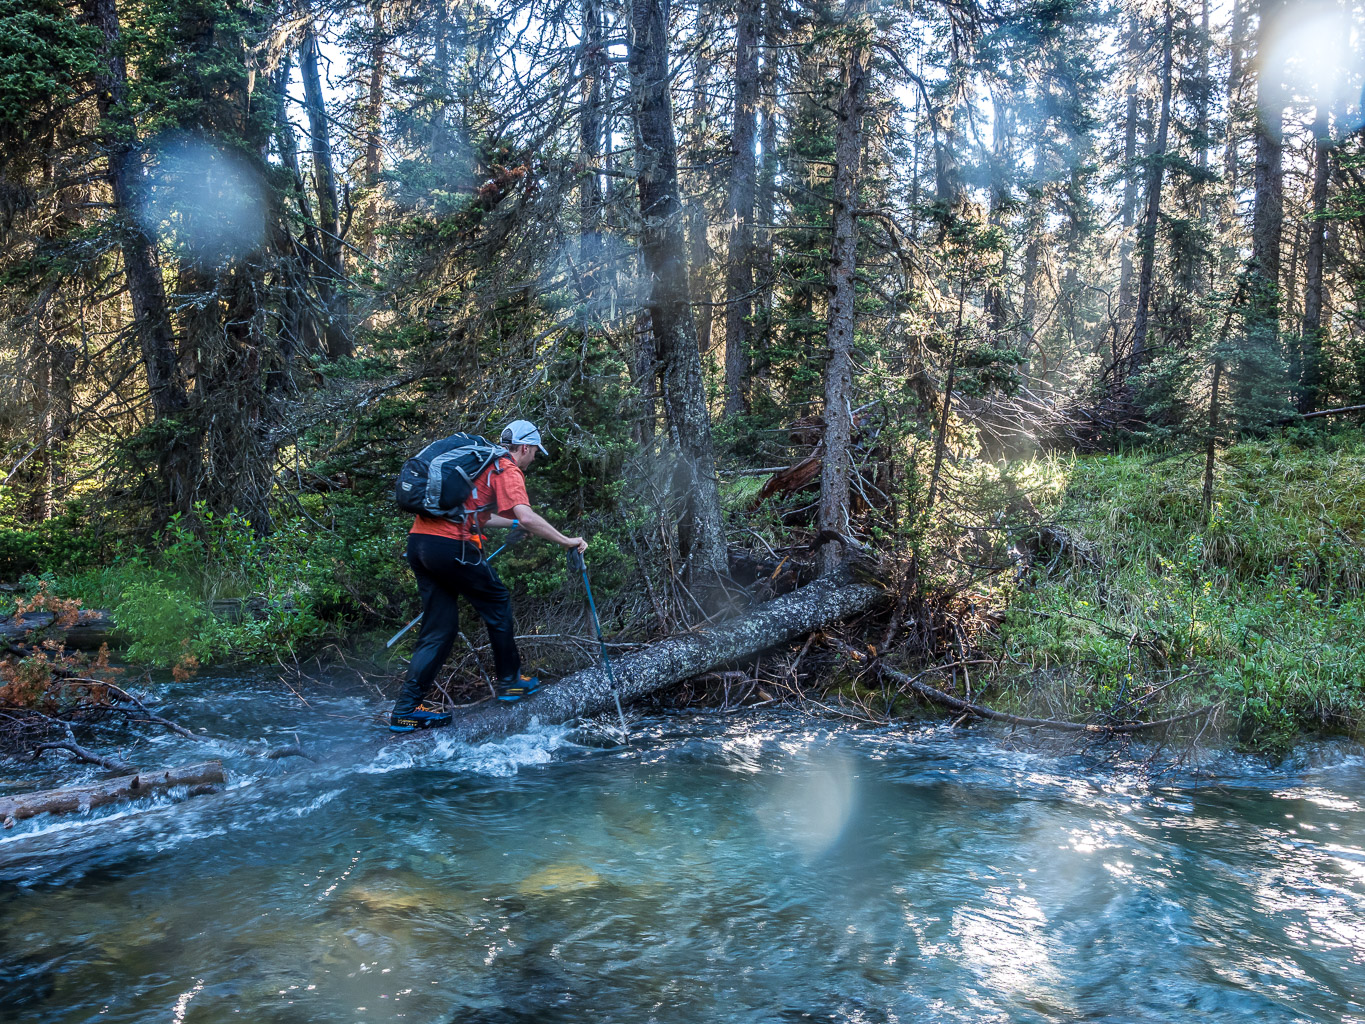 Our escape across Currie Creek. Right where Phil is the water was deeper than my 120cm poles could reach. And that log is slick too BTW. We found a much safer crossing upstream on return.